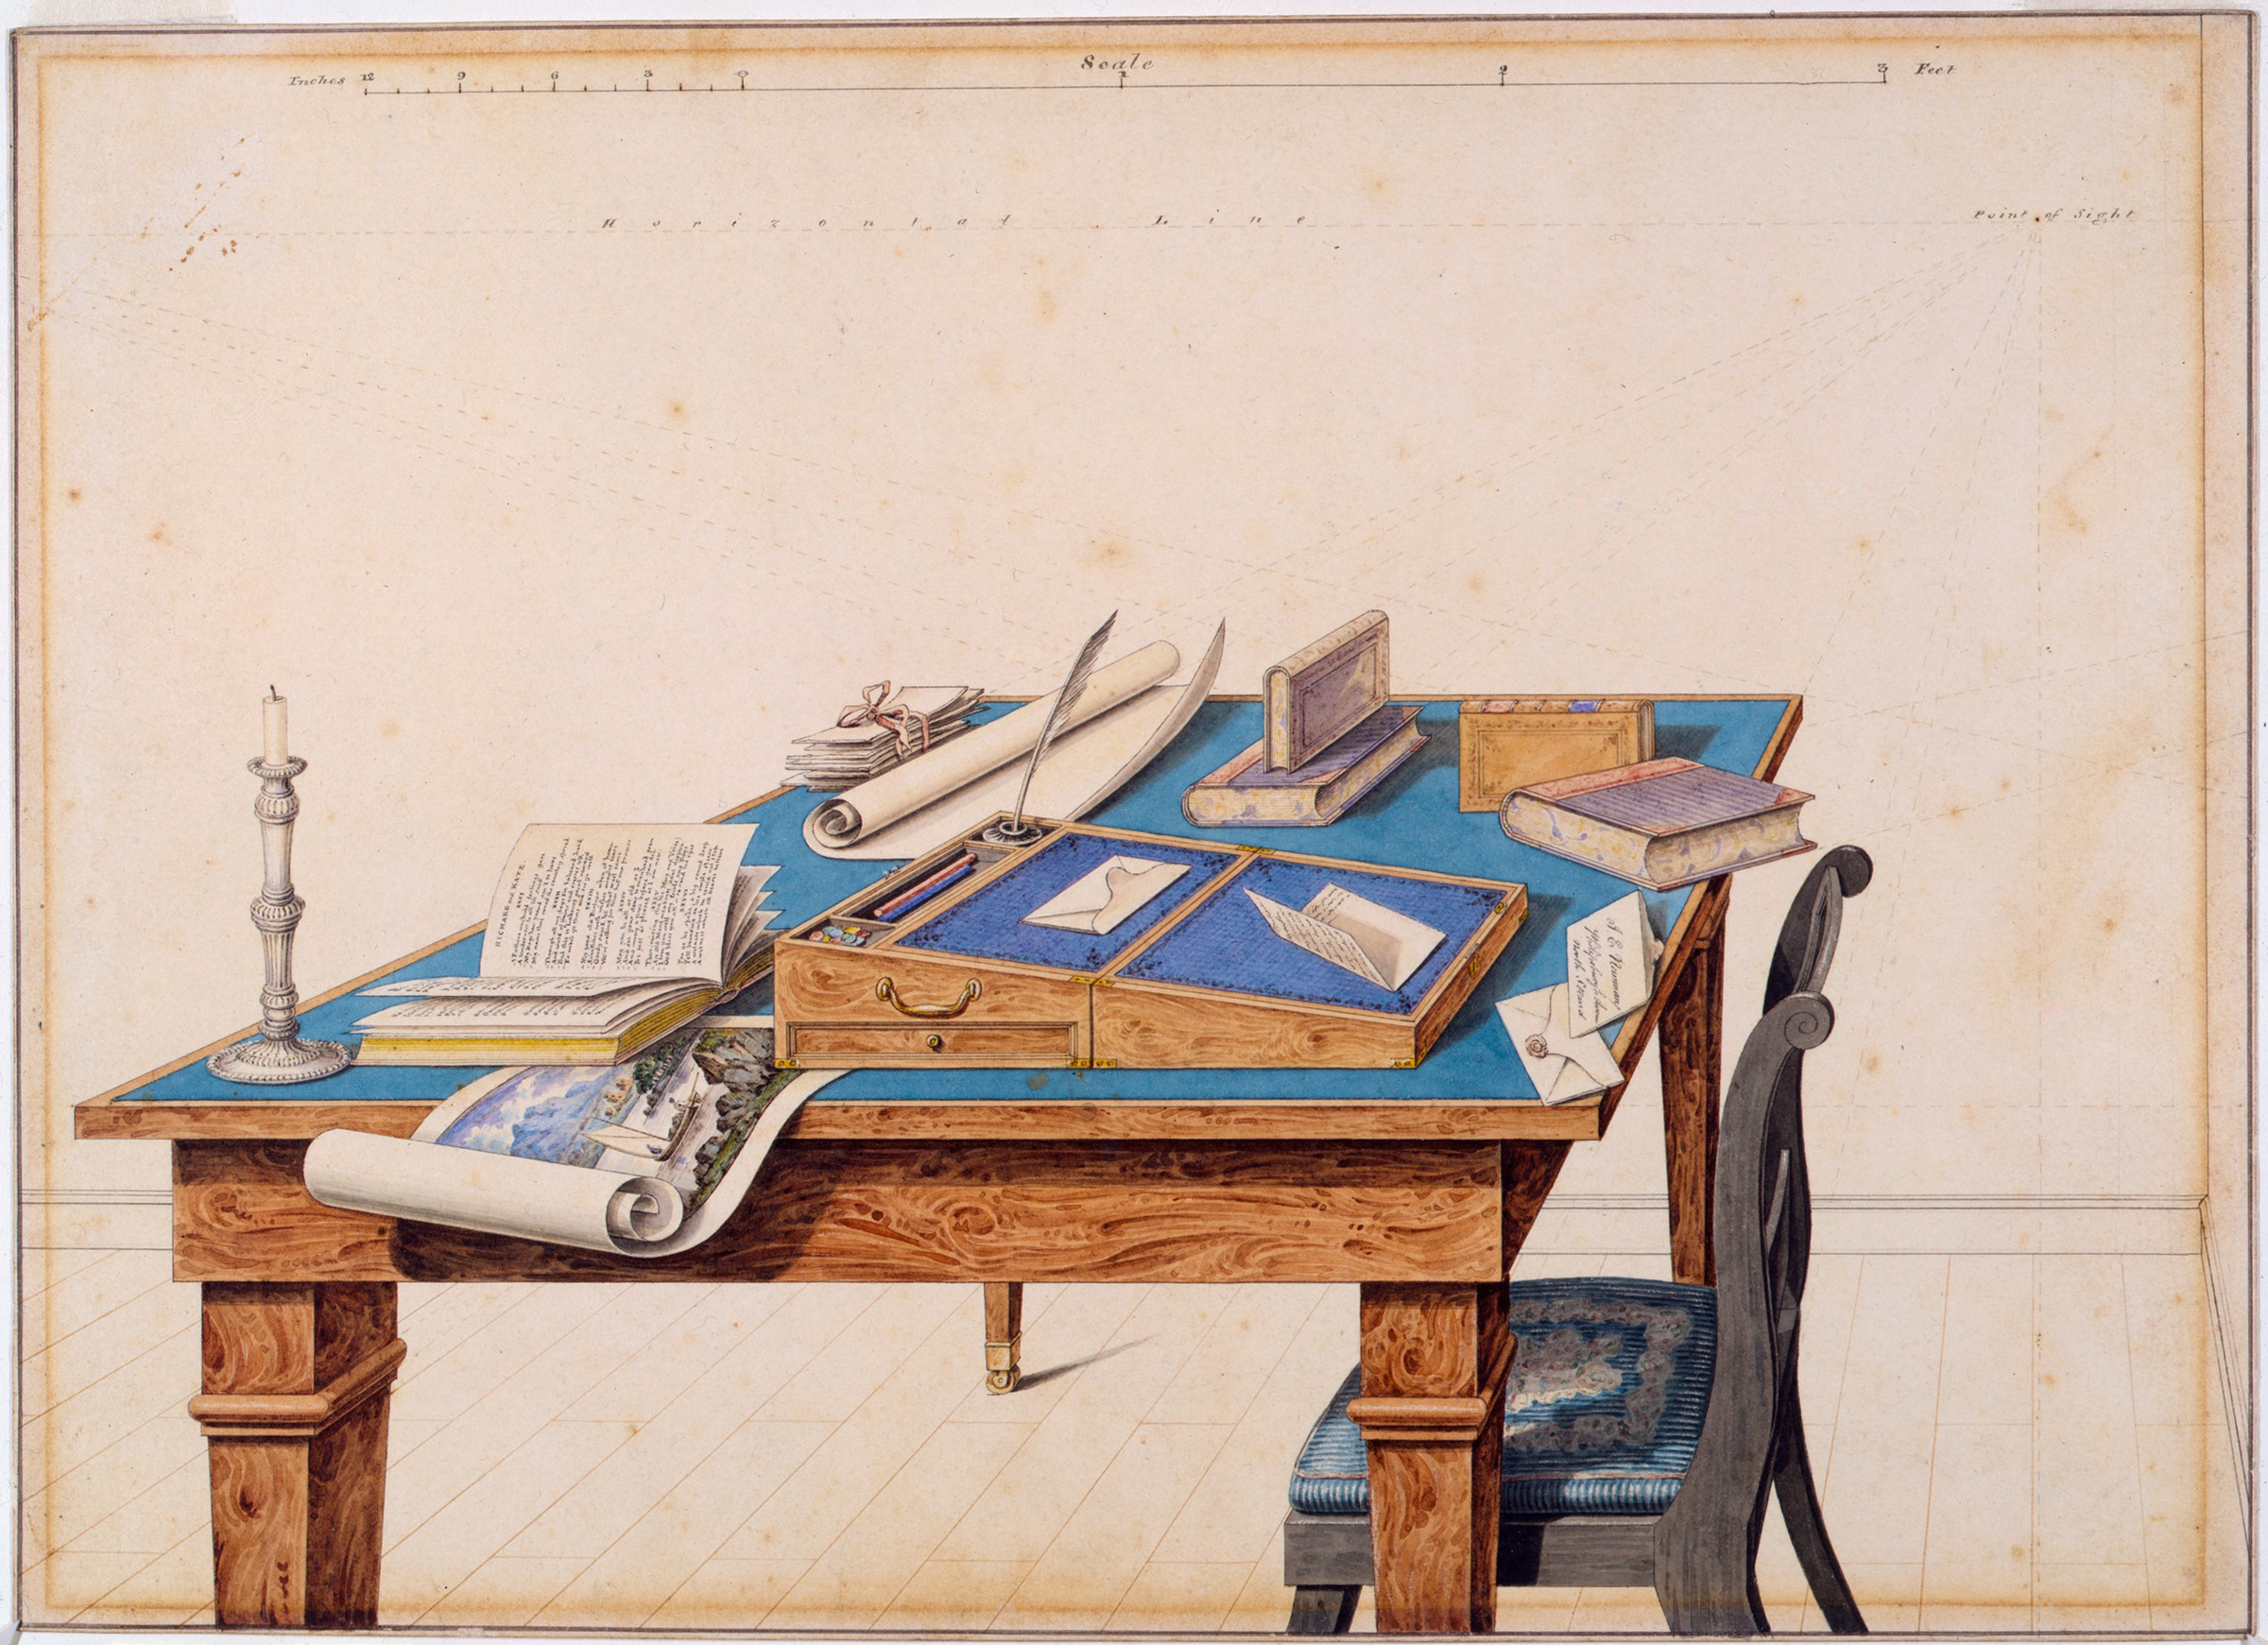 In the center of this drawing, there is a table with a blue top; to its right is a chair. The table is covered with books, a candlestick, and letters, along with a portable writing desk with a quill pen. A watercolor landscape unfurls off the edge of the table.